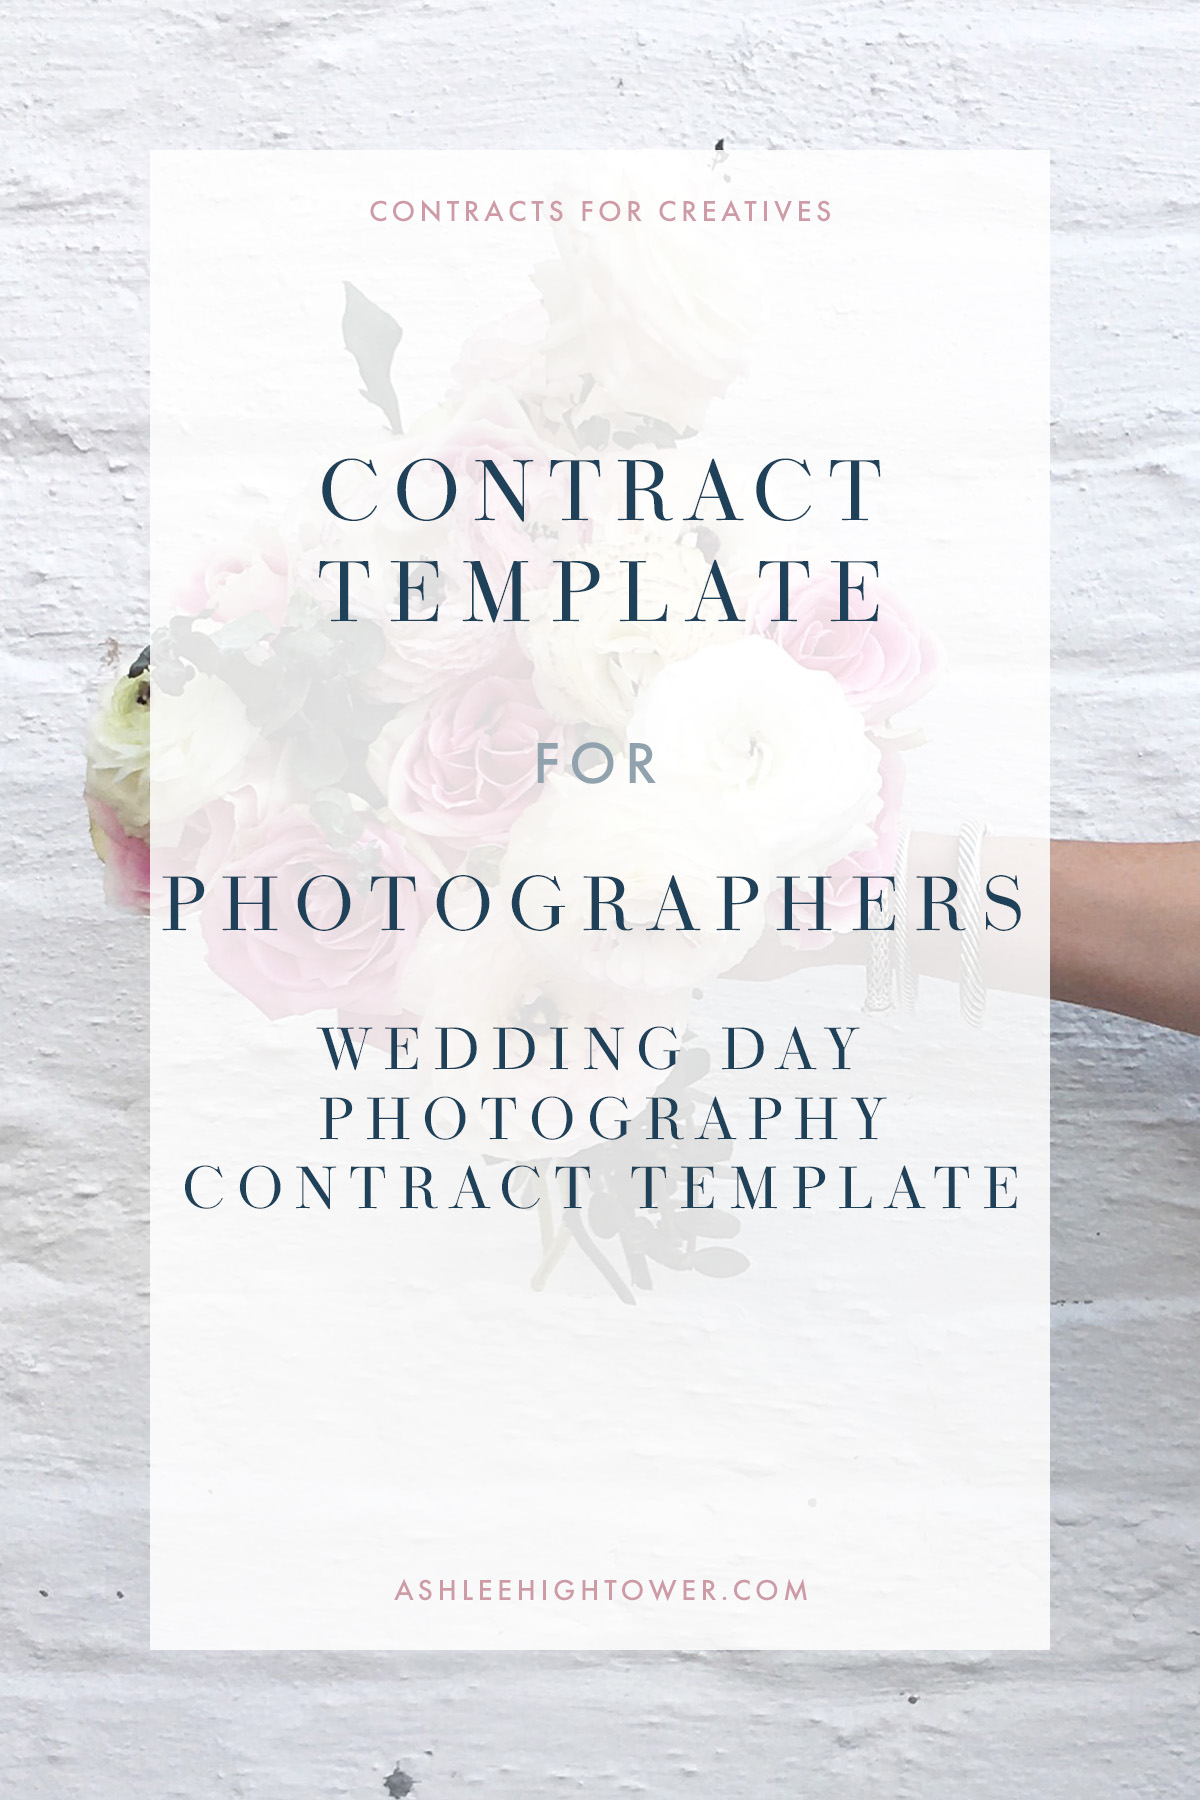 Contracts for Creatives | Photographer Wedding Day Contract Template | | Photographer Contracts | Ashlee Hightower